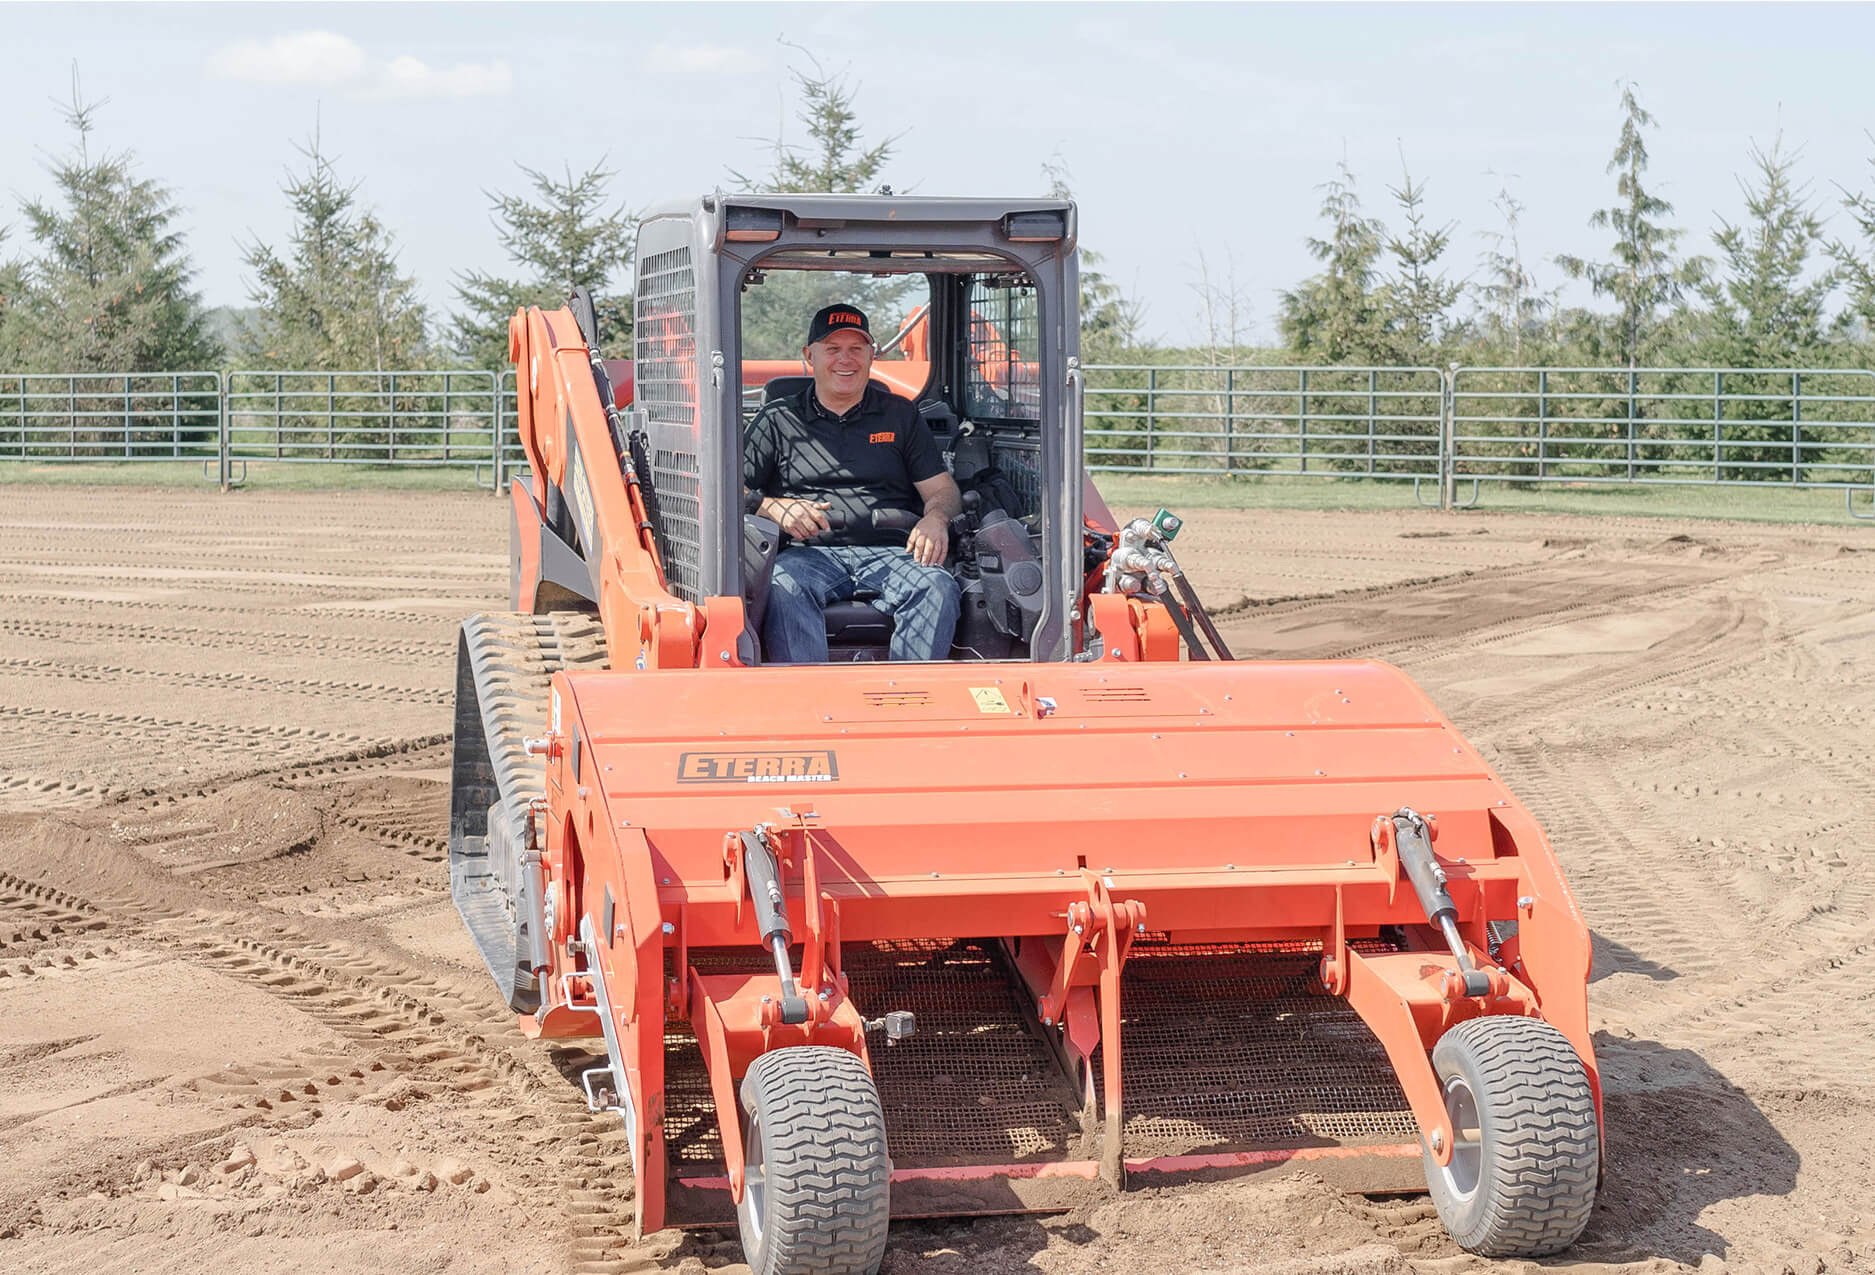 Eterra Beach master skid steer beach and arena cleaner front action